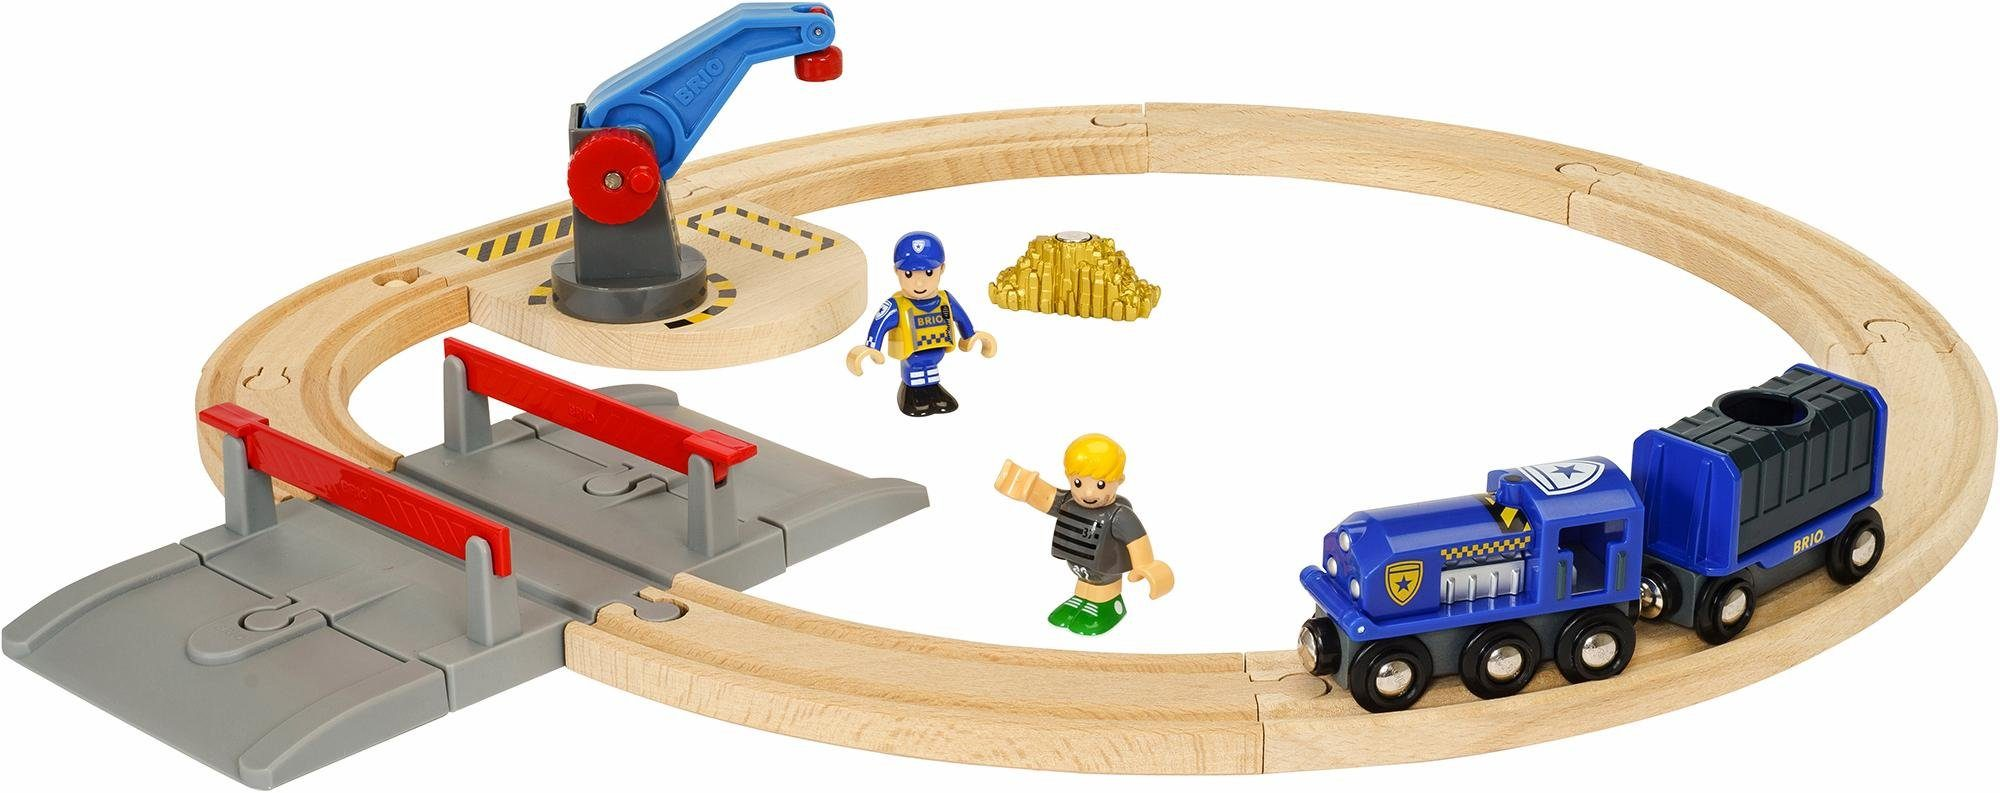 BRIO® Spielset mit Magnet, »Brio WORLD Polizei Goldtransportset«